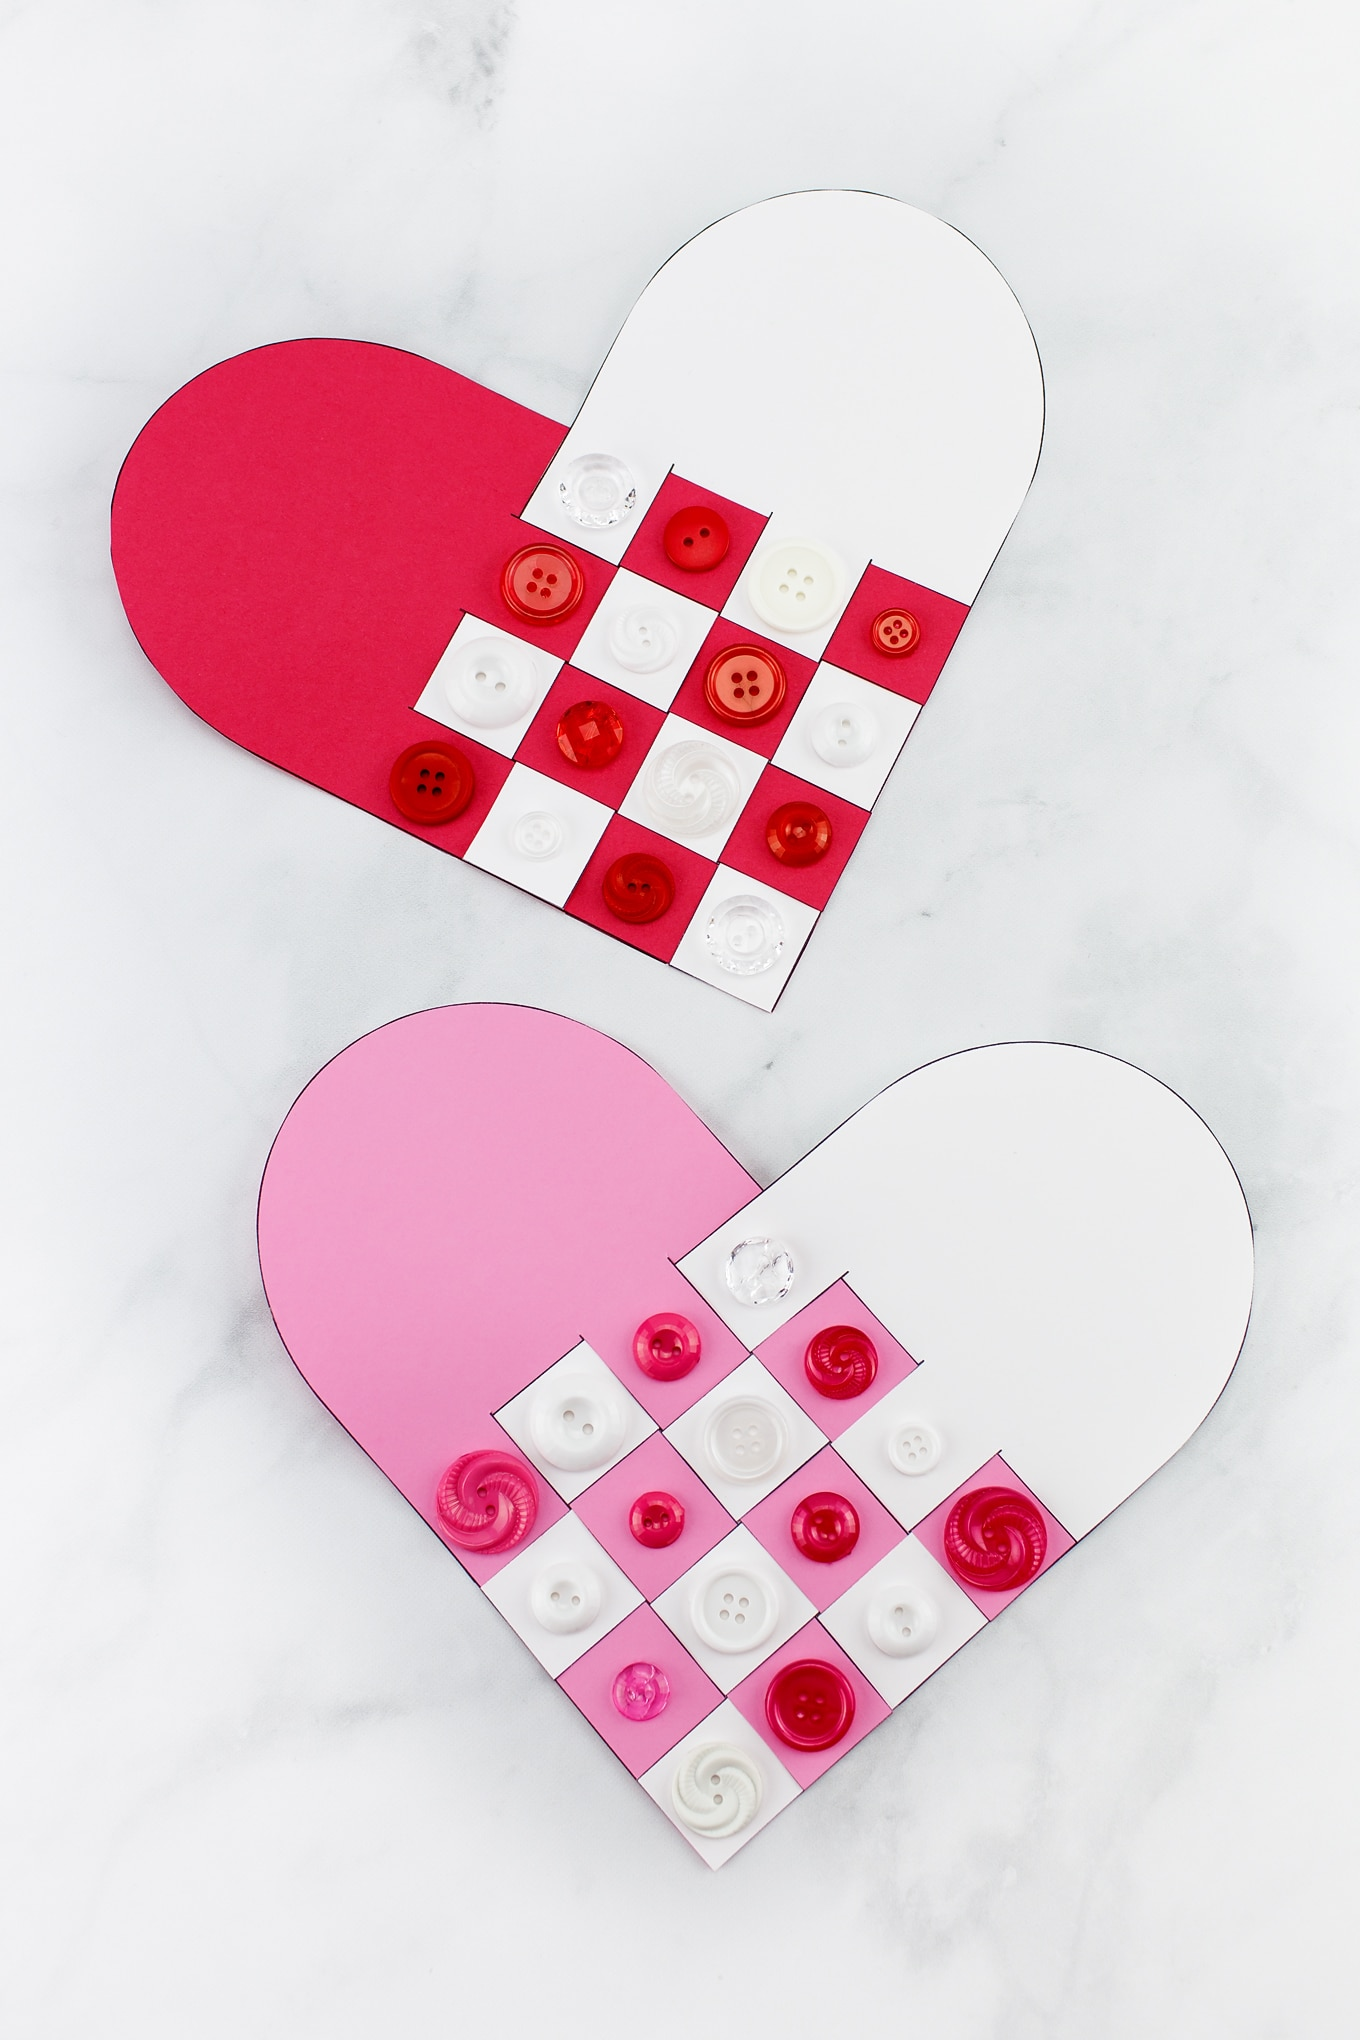 Woven Heart Valentine's Day Craft